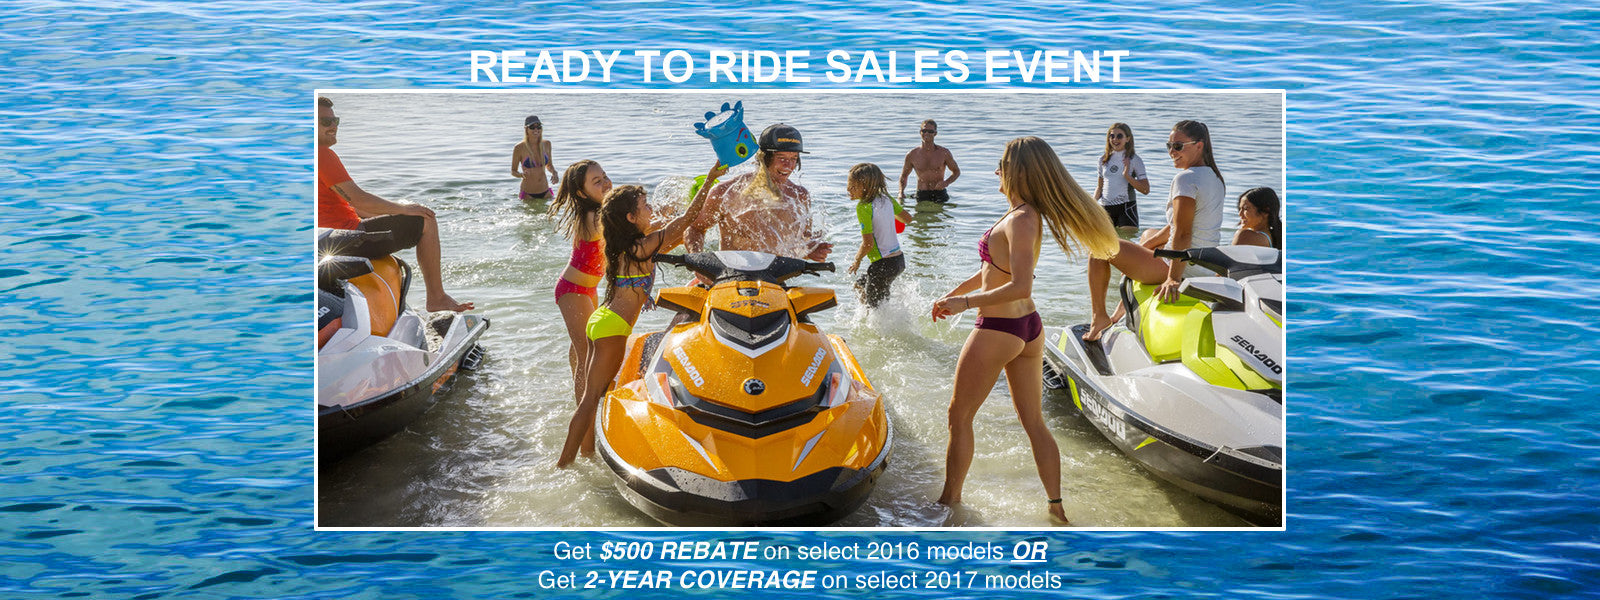 Orlando/Kissimmee Sea-Doo PWC Dealer